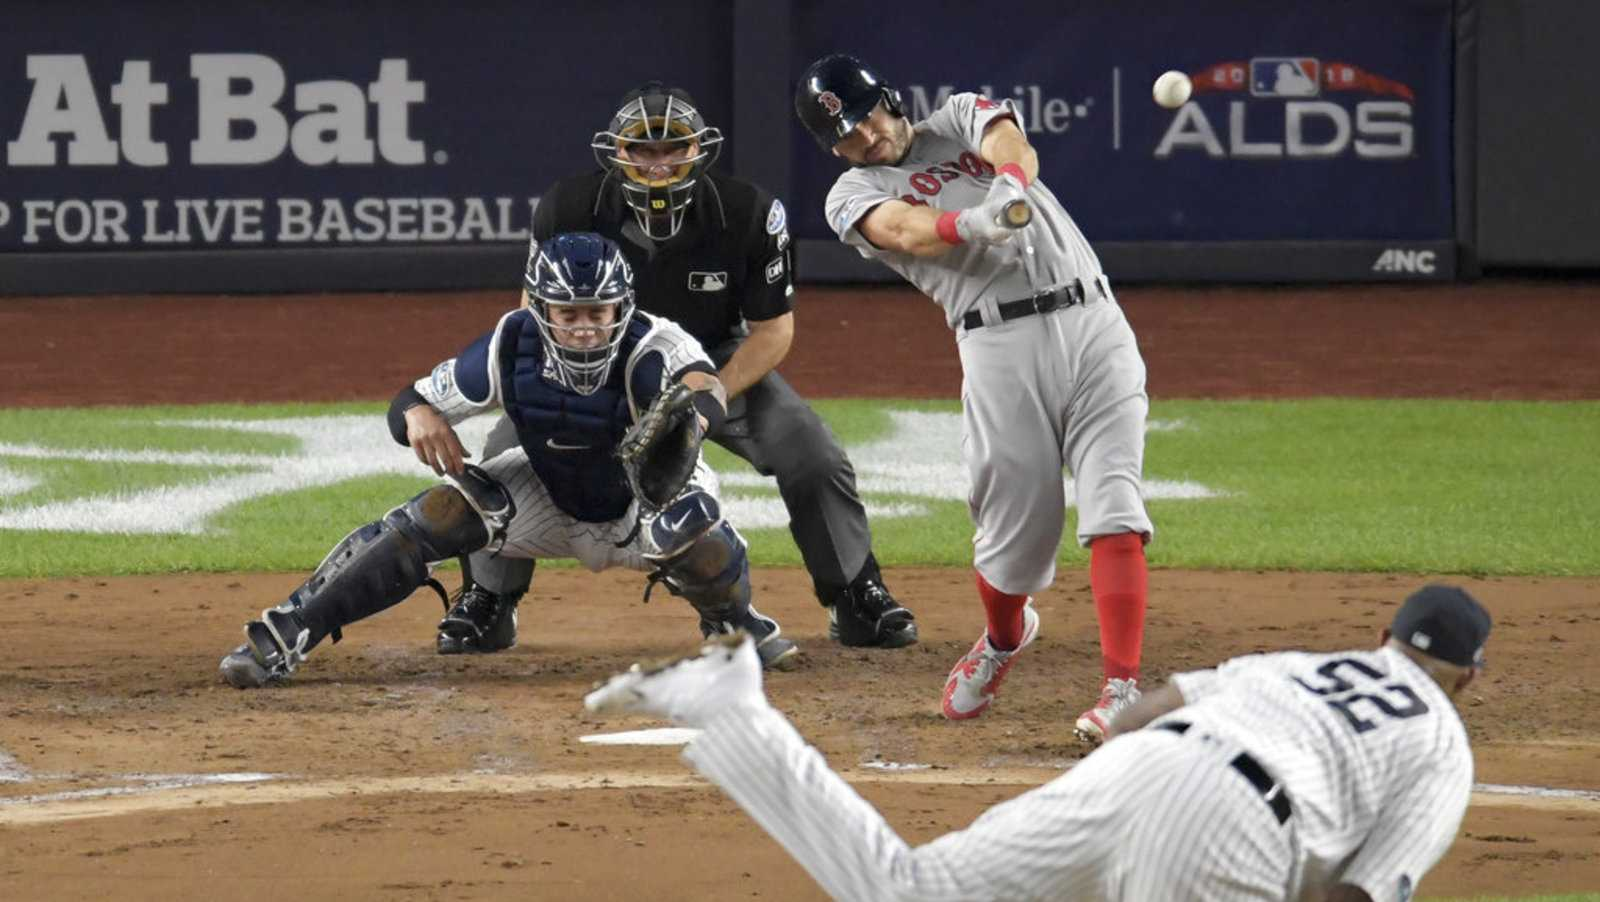 Red Sox beat Yankees, advance to American League Championship Series